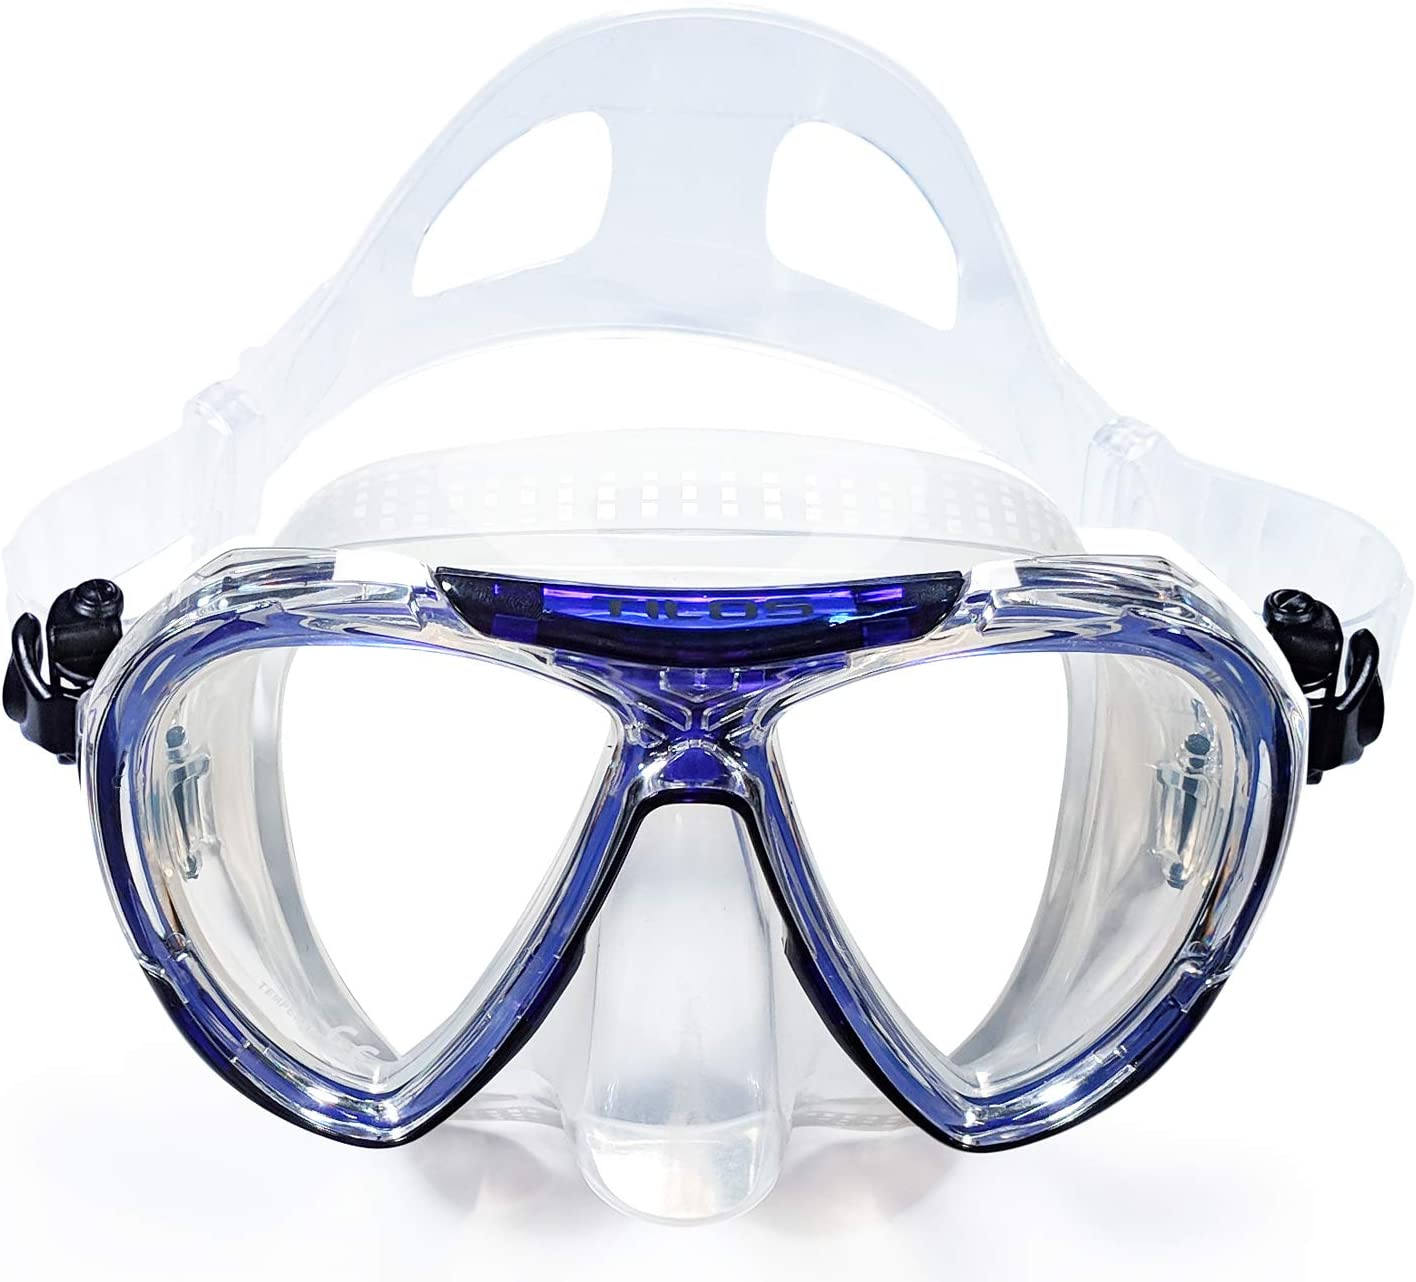 Tilos Revo, Wide View Snorkel Diving Mask: Scuba, Snorkeling, Free Dive, and Swim 180 Masks - Anti Fog Divers Goggles with Double Lens, Nose Cover, Silicone Strap - Men/Women Adult Water Gear